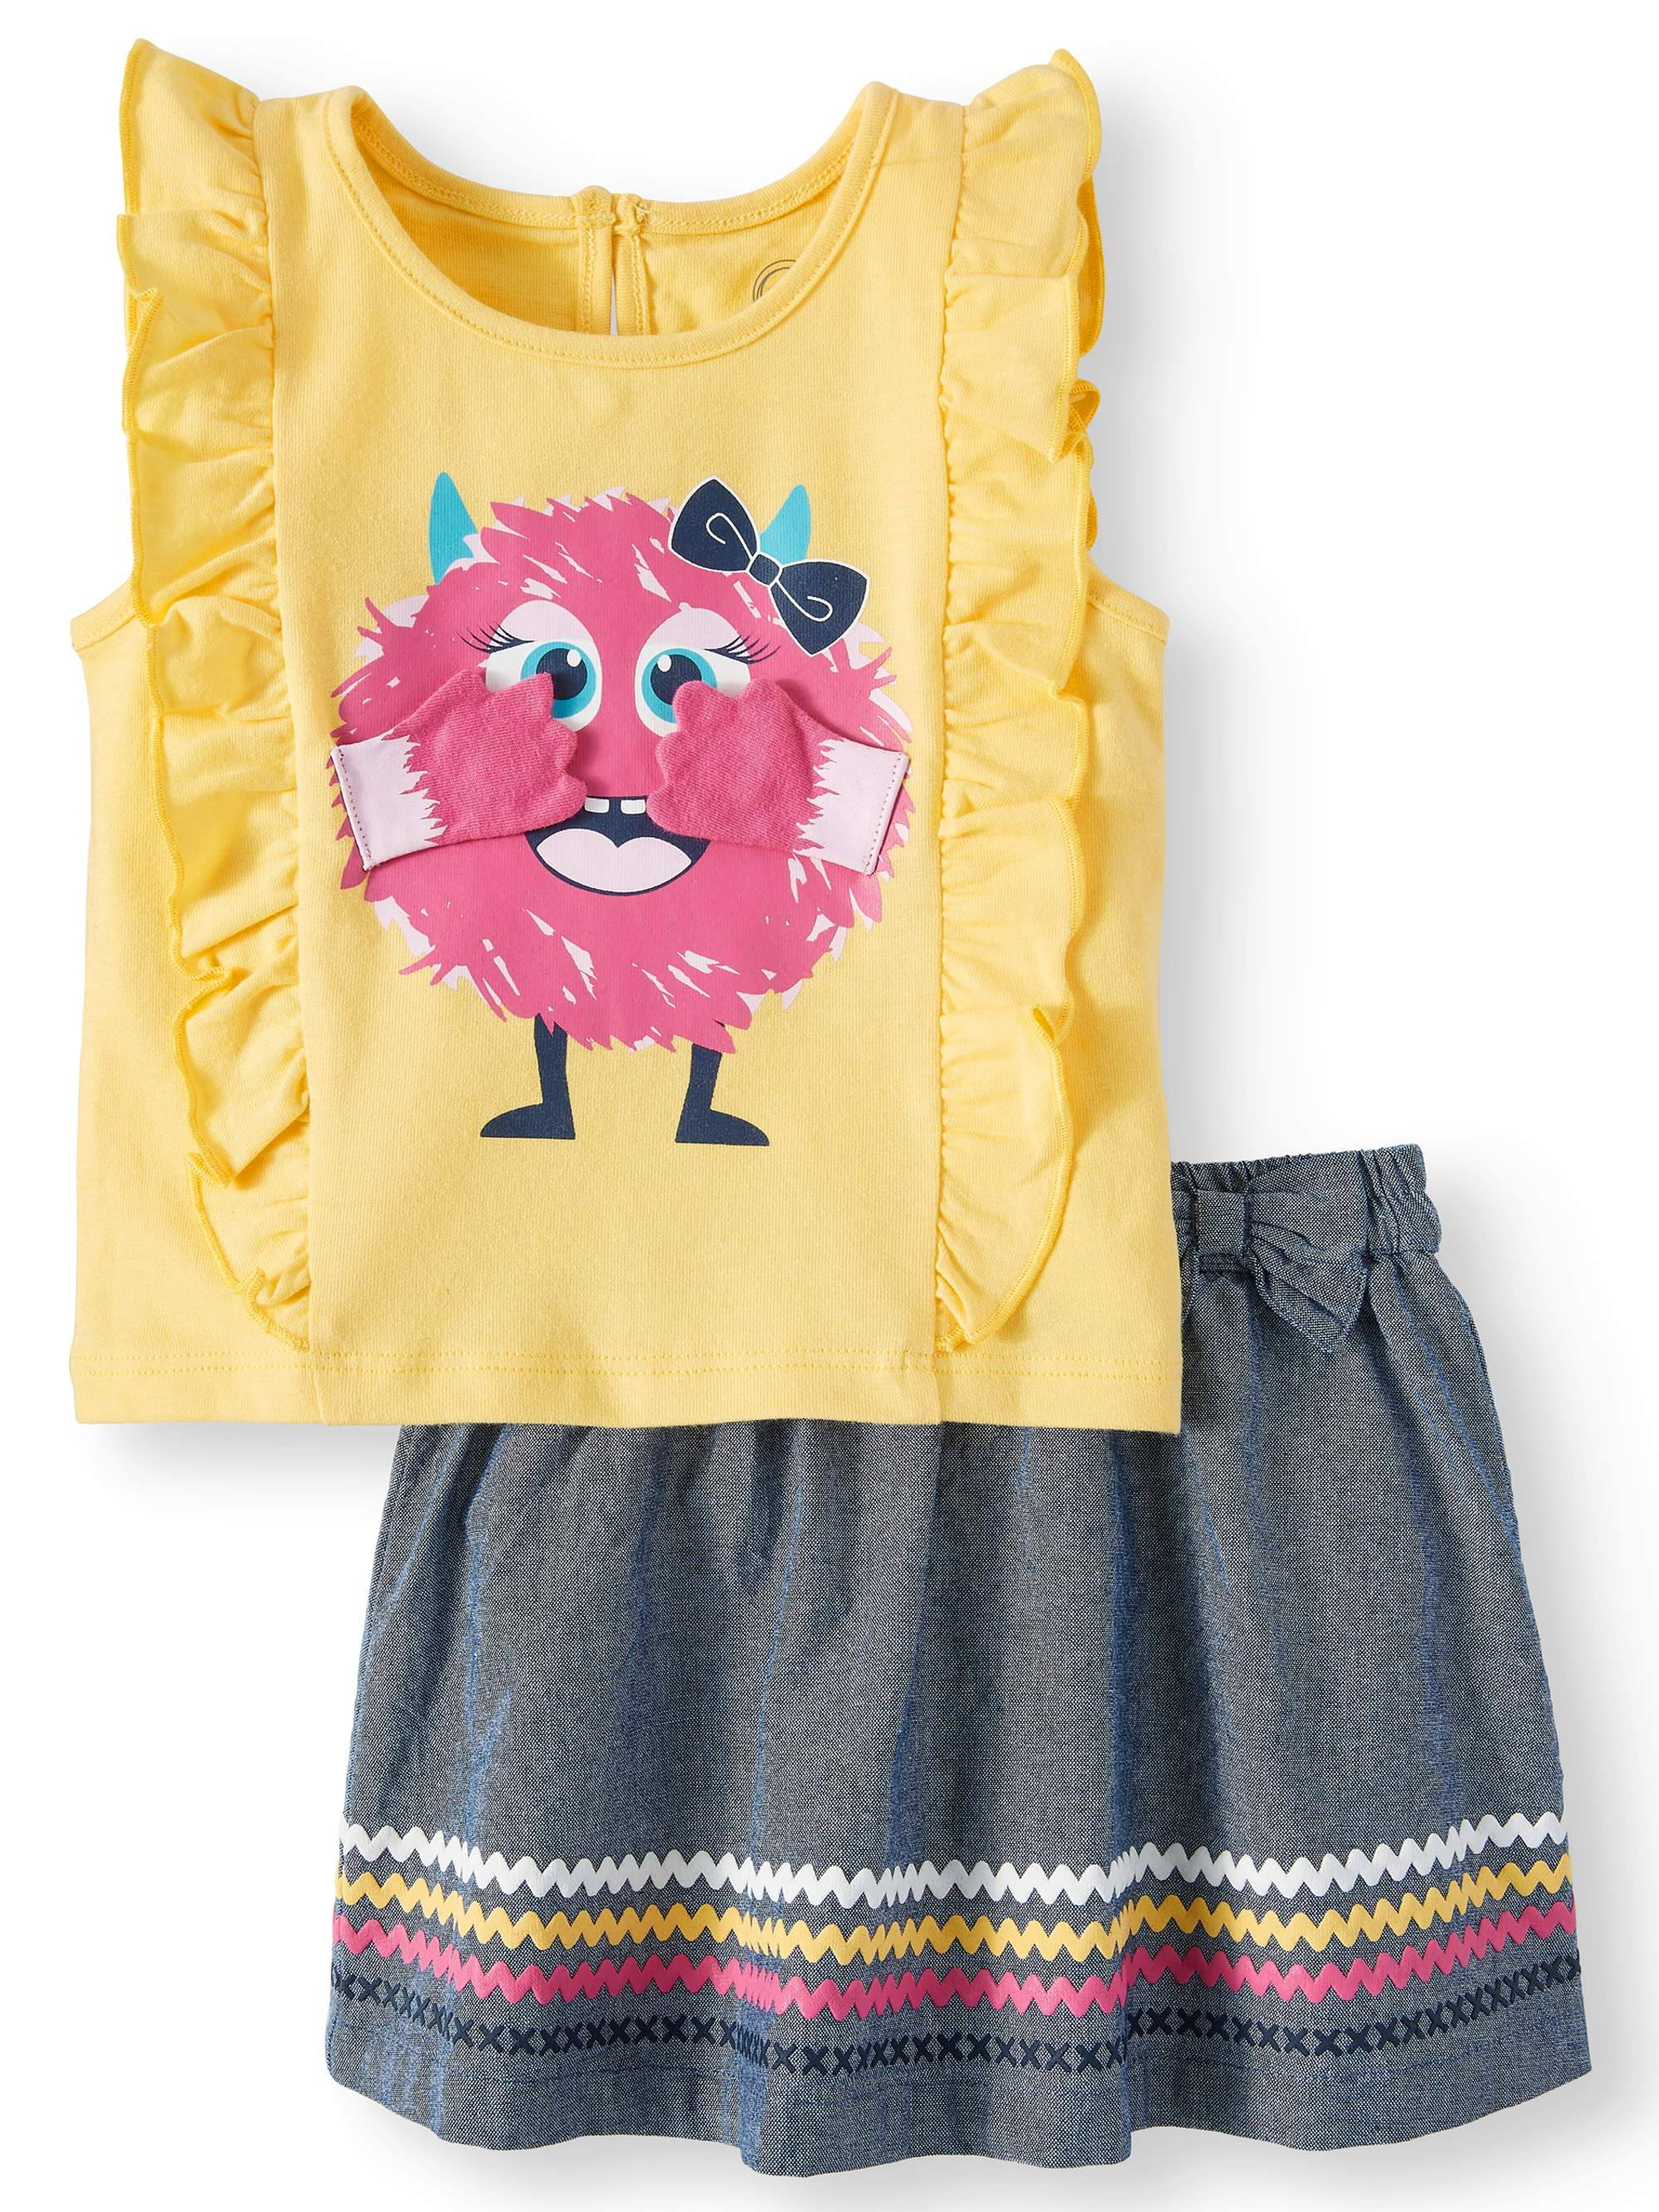 3-D Graphic Monster Ruffle Tank & Skirt, 2pc Outfit Set (Baby Girls)